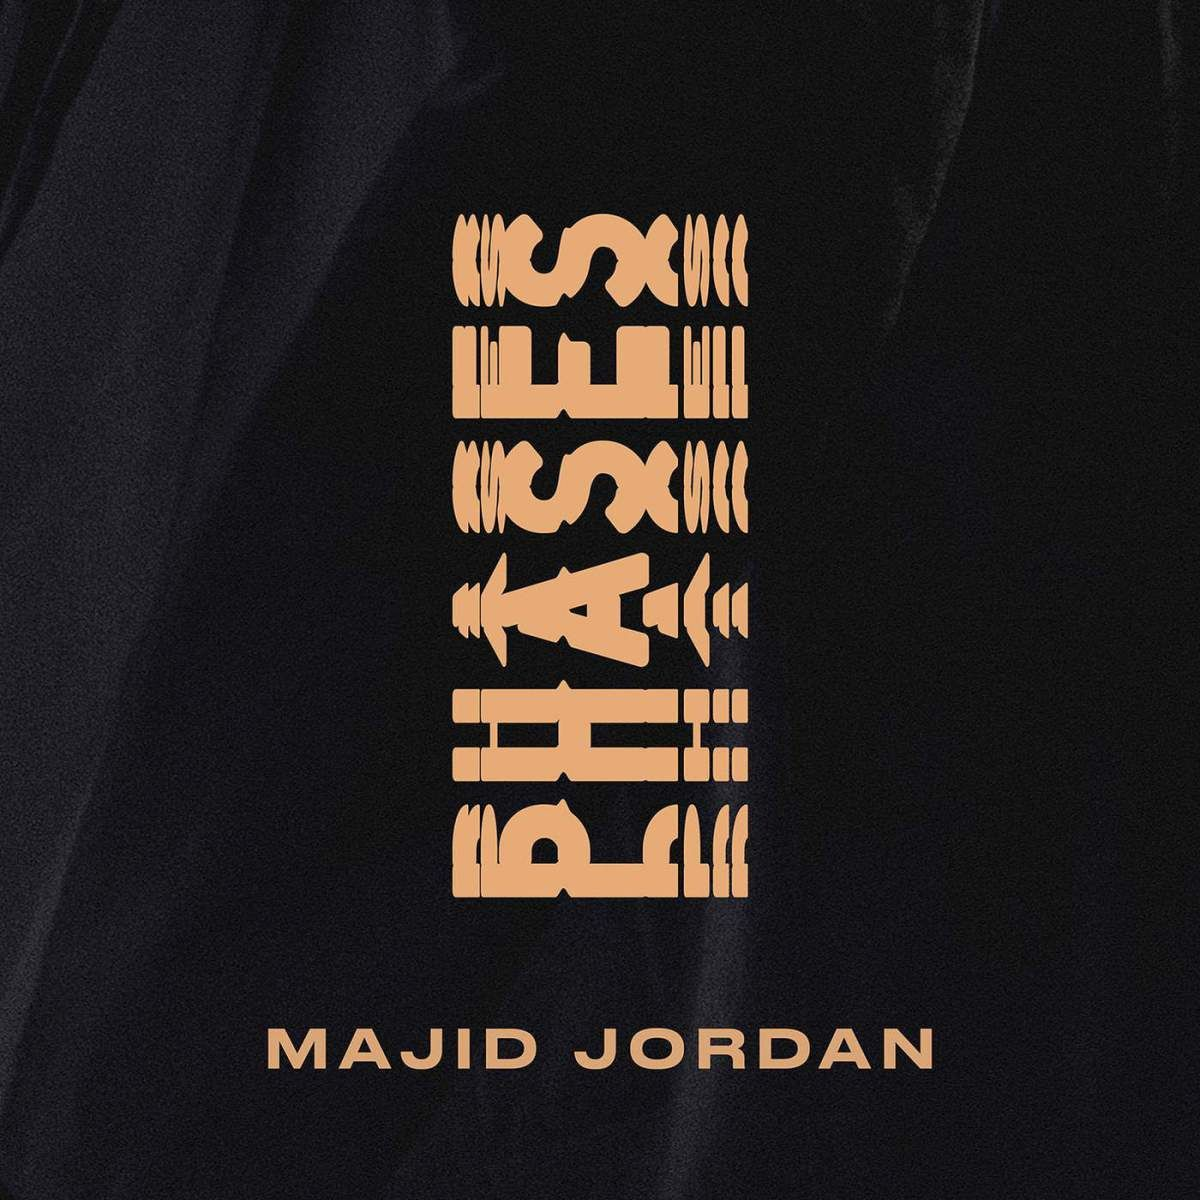 The coloring book chance the rapper itunes - Majid Jordan Phases Single Itunes Plus Aac M4a